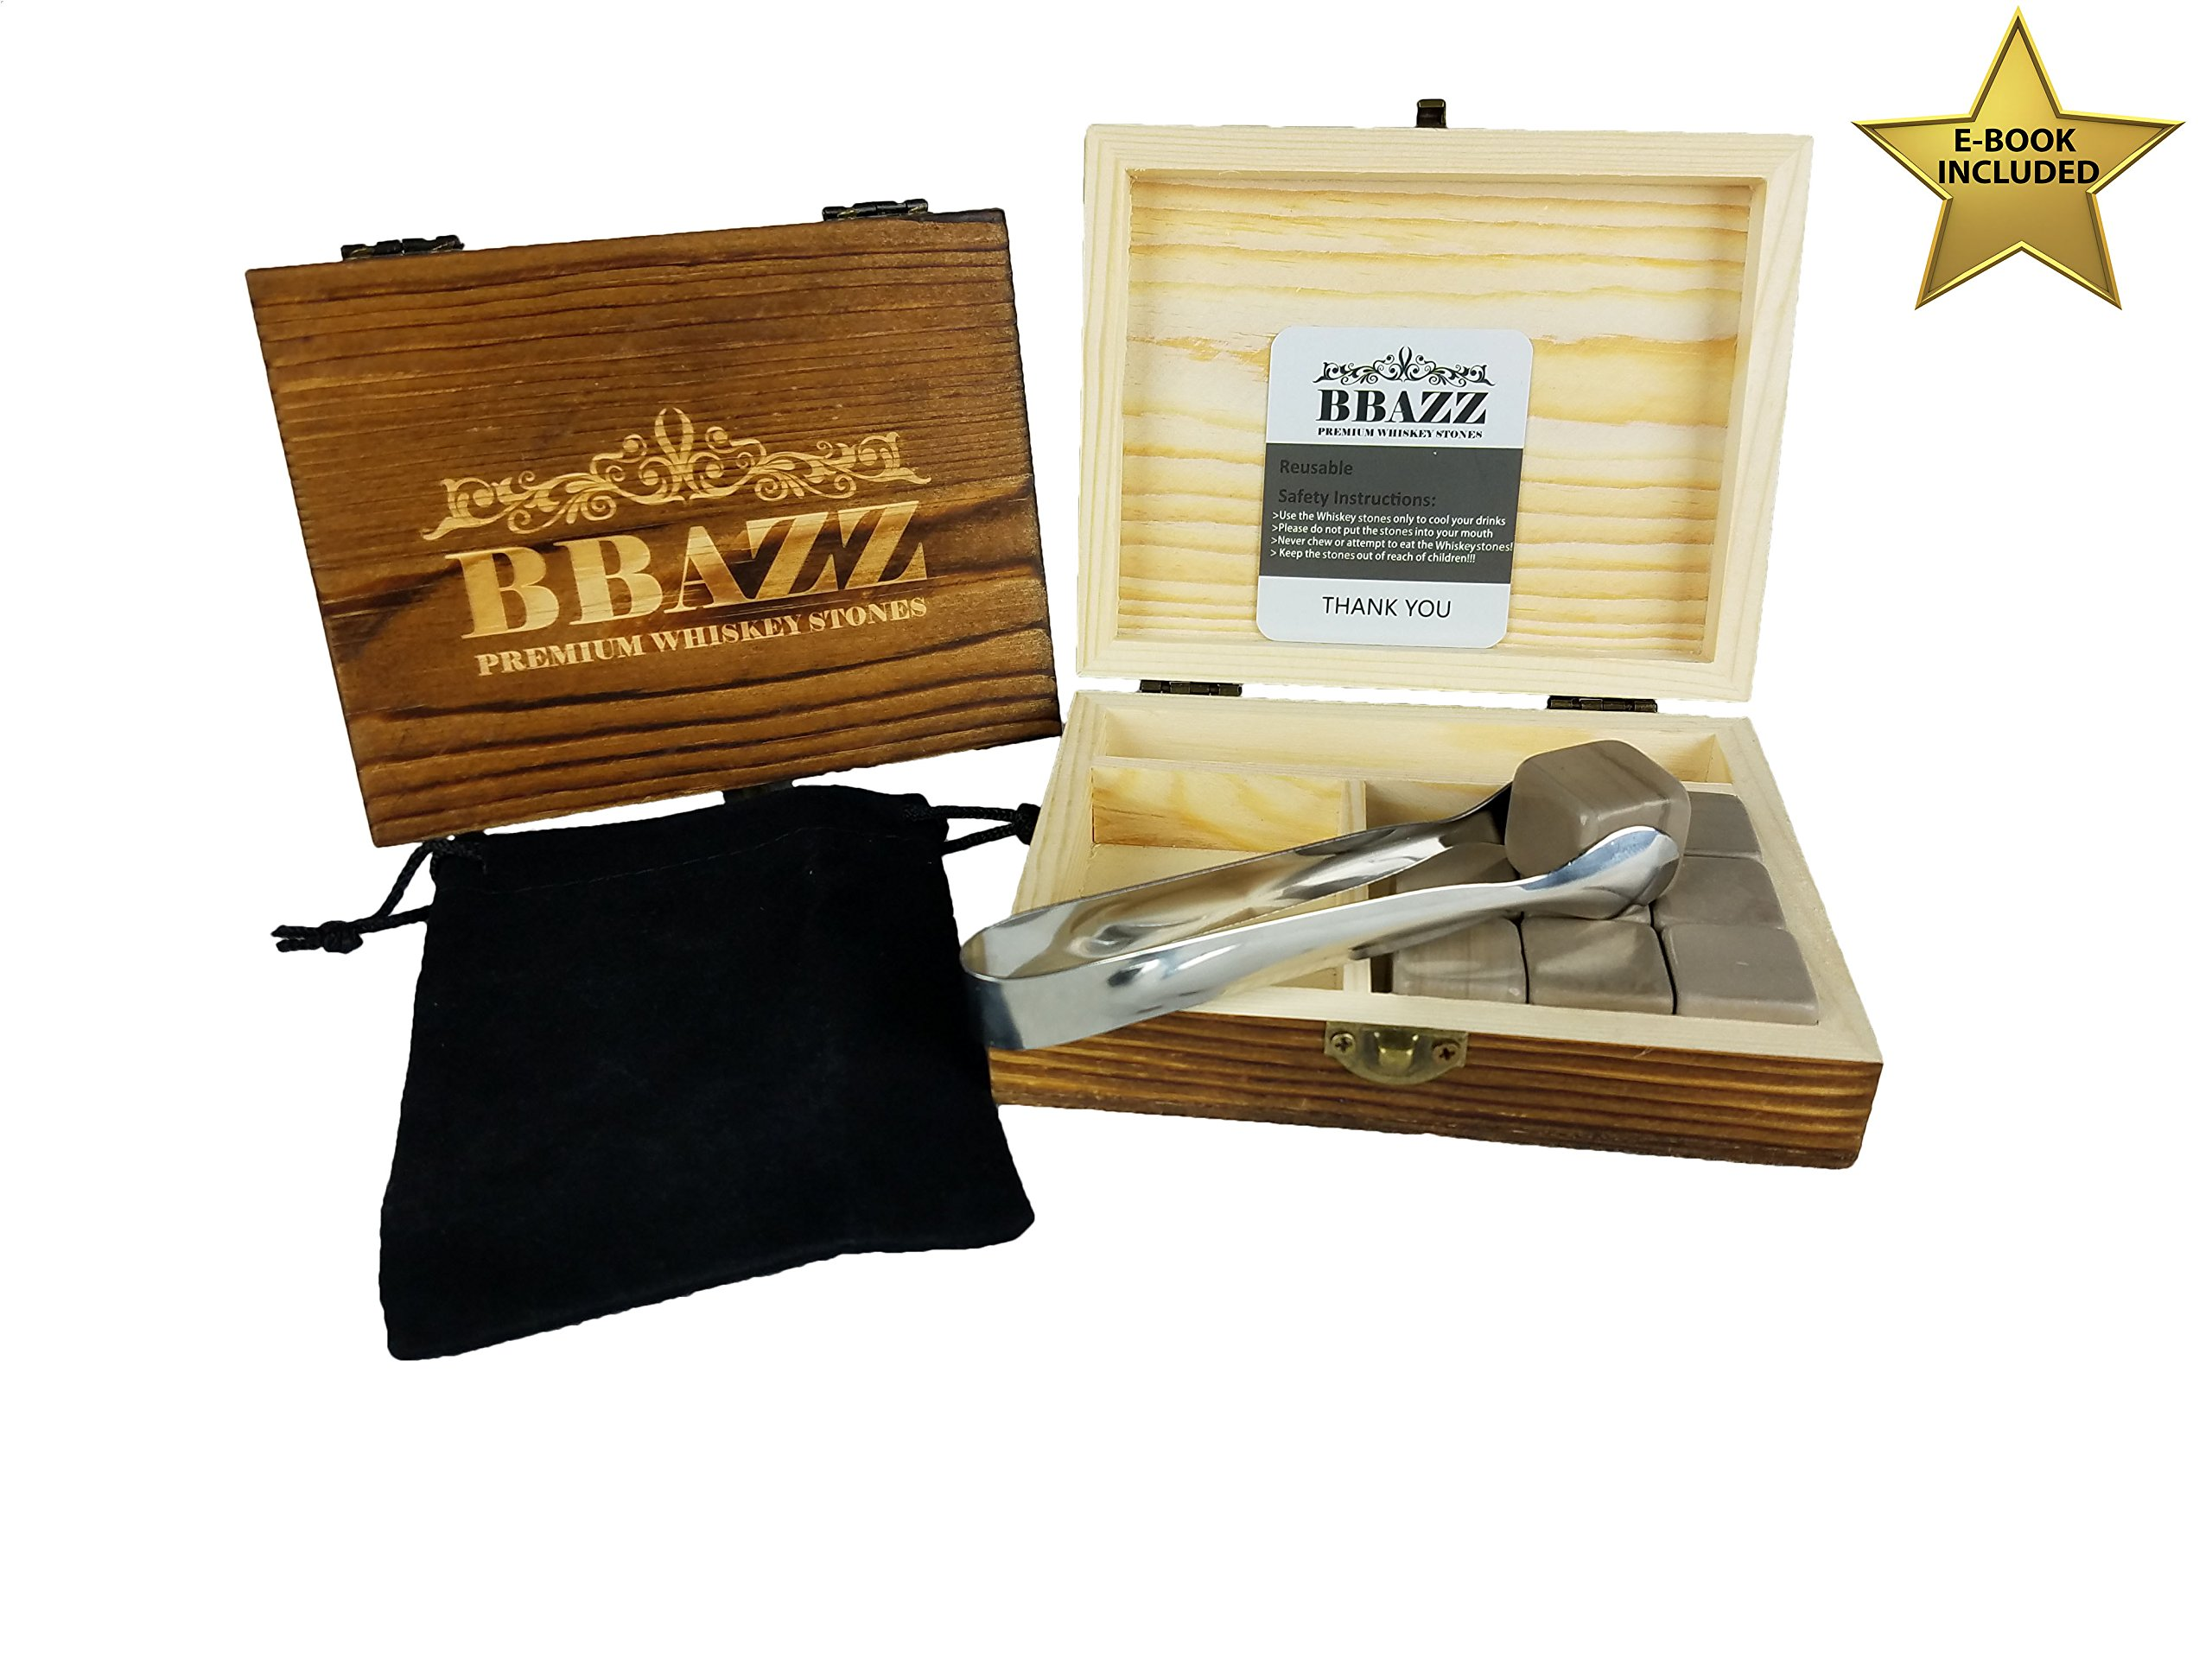 Whiskey Stones - Granite Chilling Stones Gift Set, Better Than Ice Cubes, Great For Whisky, Bourbon, Cognac, Vodka, Rum, Brandy, and Wine - By BBazz Products by BBazz Products